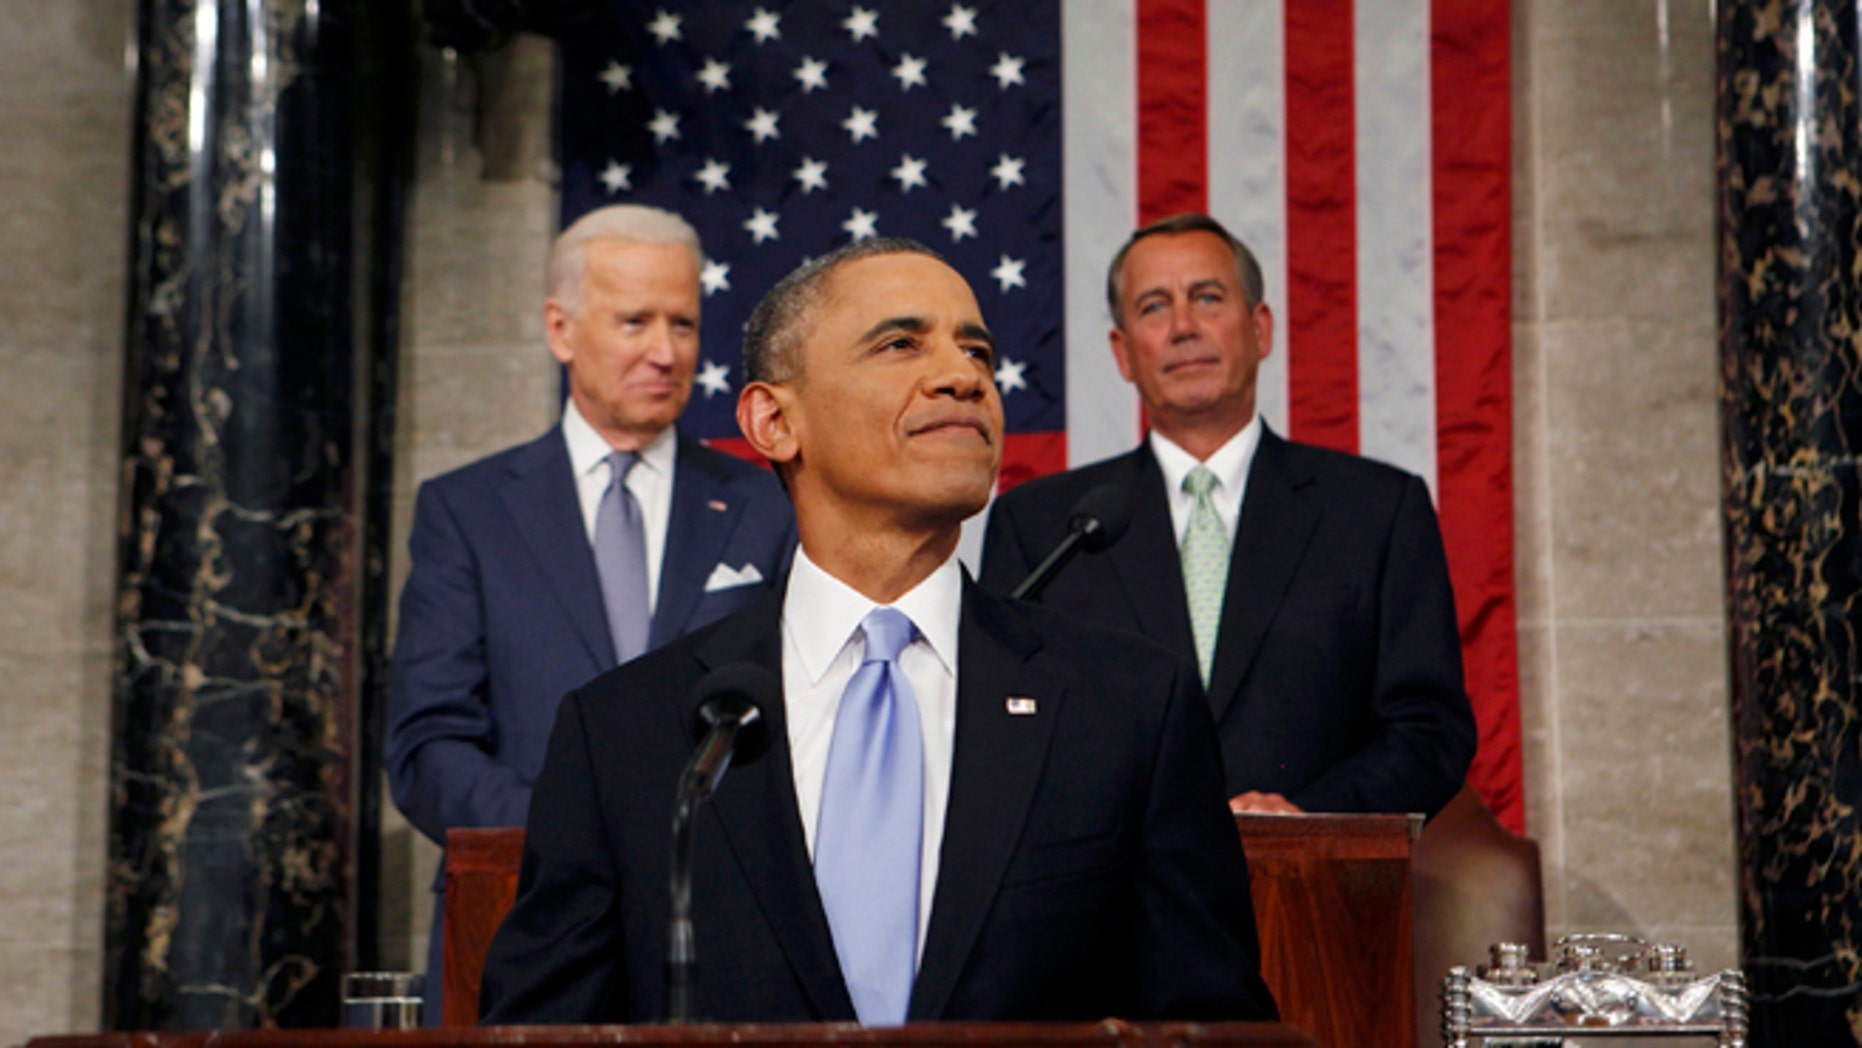 U.S. President Barack Obama smiles as he arrives to deliver his State of the Union speech on Capitol Hill in Washington January 28, 2014.